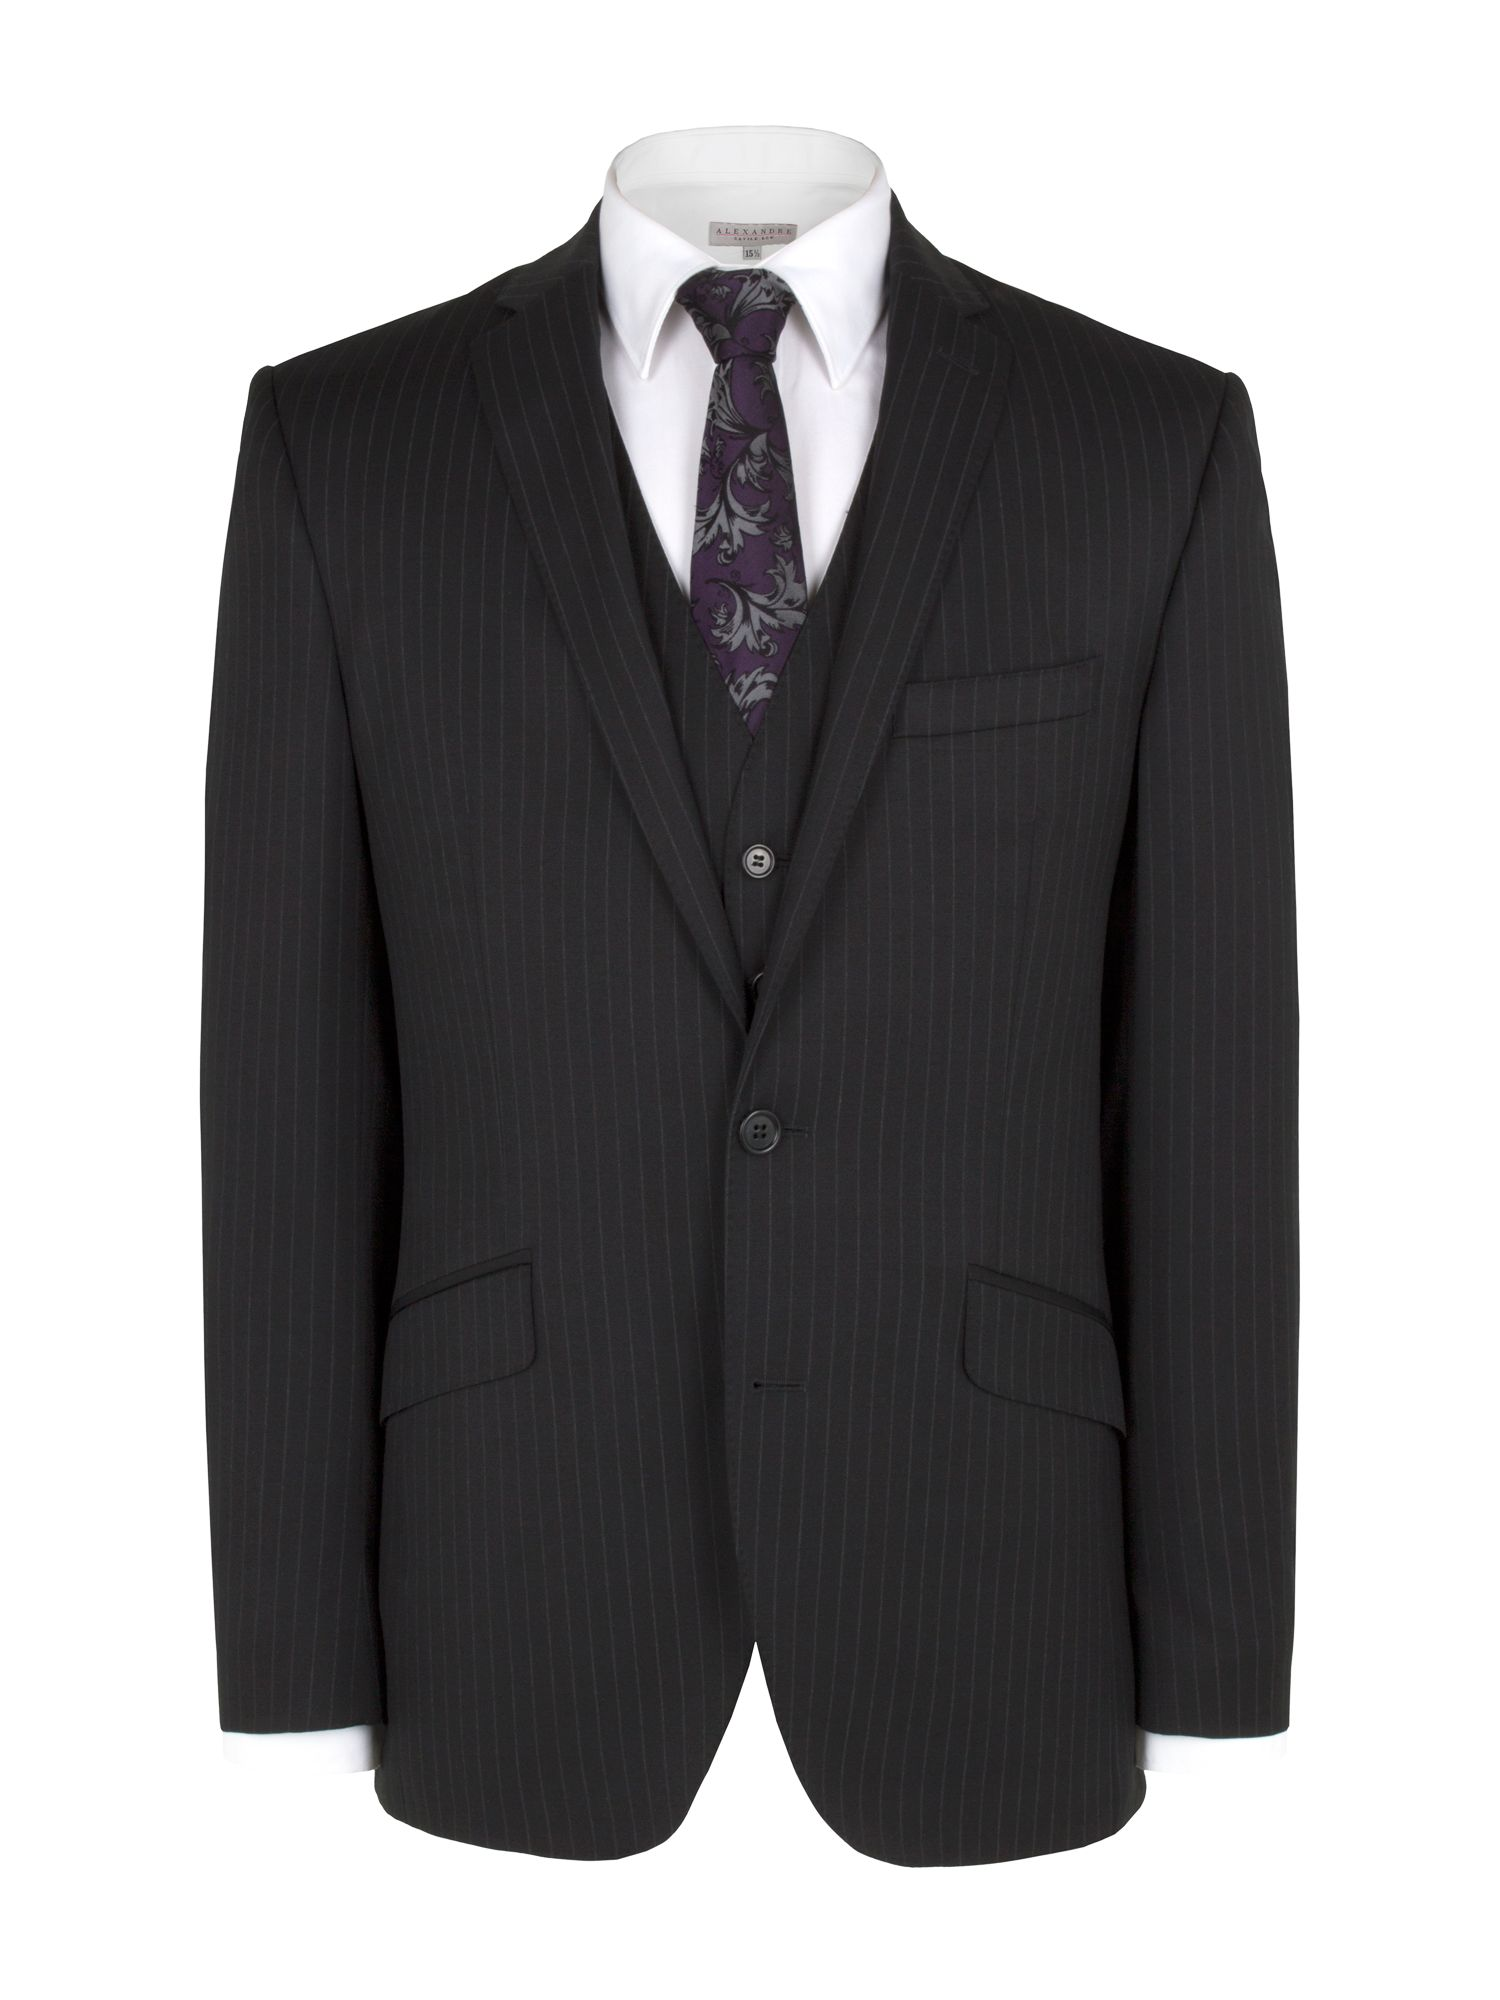 Black chalkstripe suit